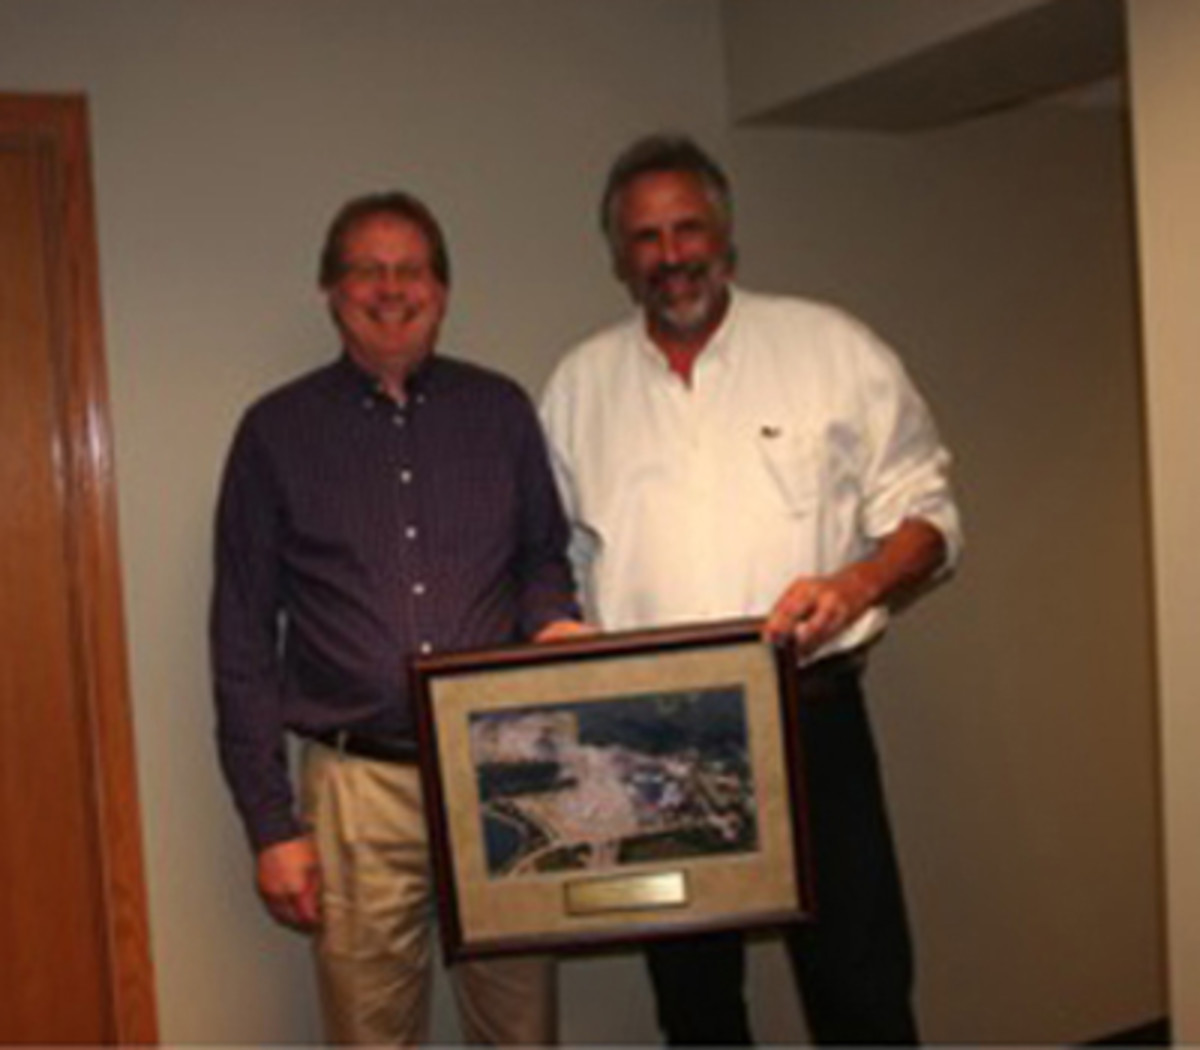 Larry Fechter presented Waldo Riesterer with a framed picture of Iola '15 for his years of sponsorship at Iola Car Show & Swap Meet.